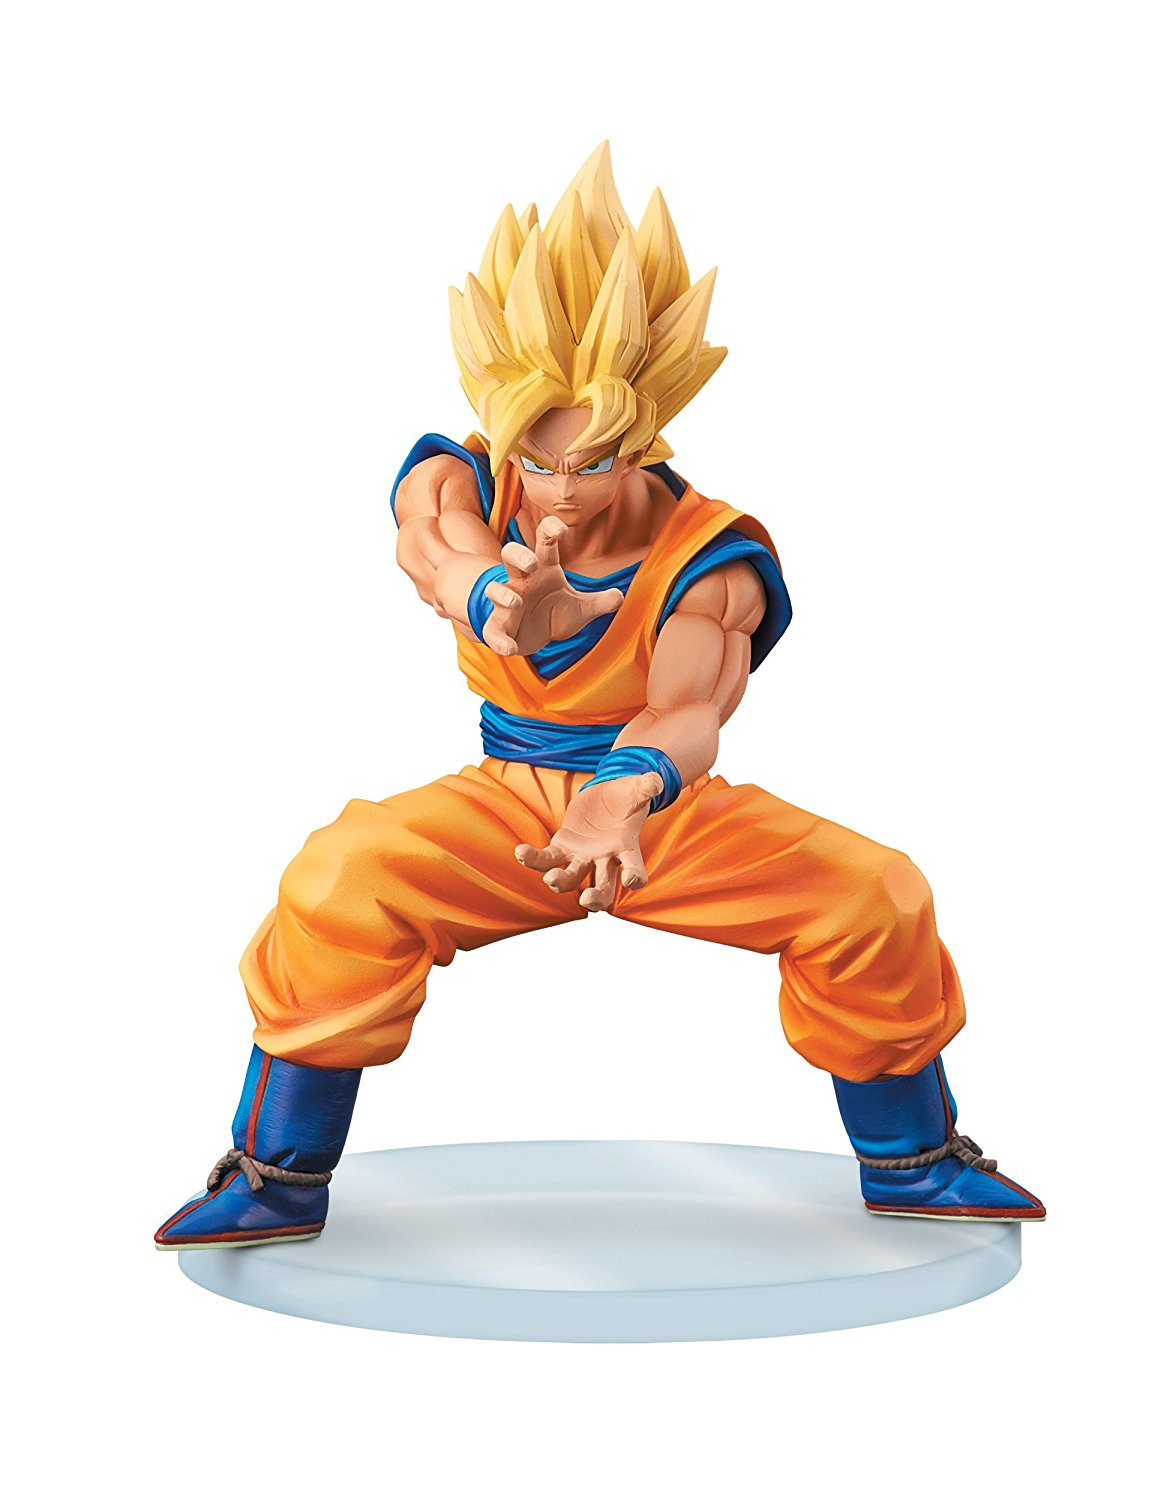 Banpresto Dragon Ball Z Super Saiyan Goku Dramatic Showcase Figure 1st Season Volume 2 Banpresto